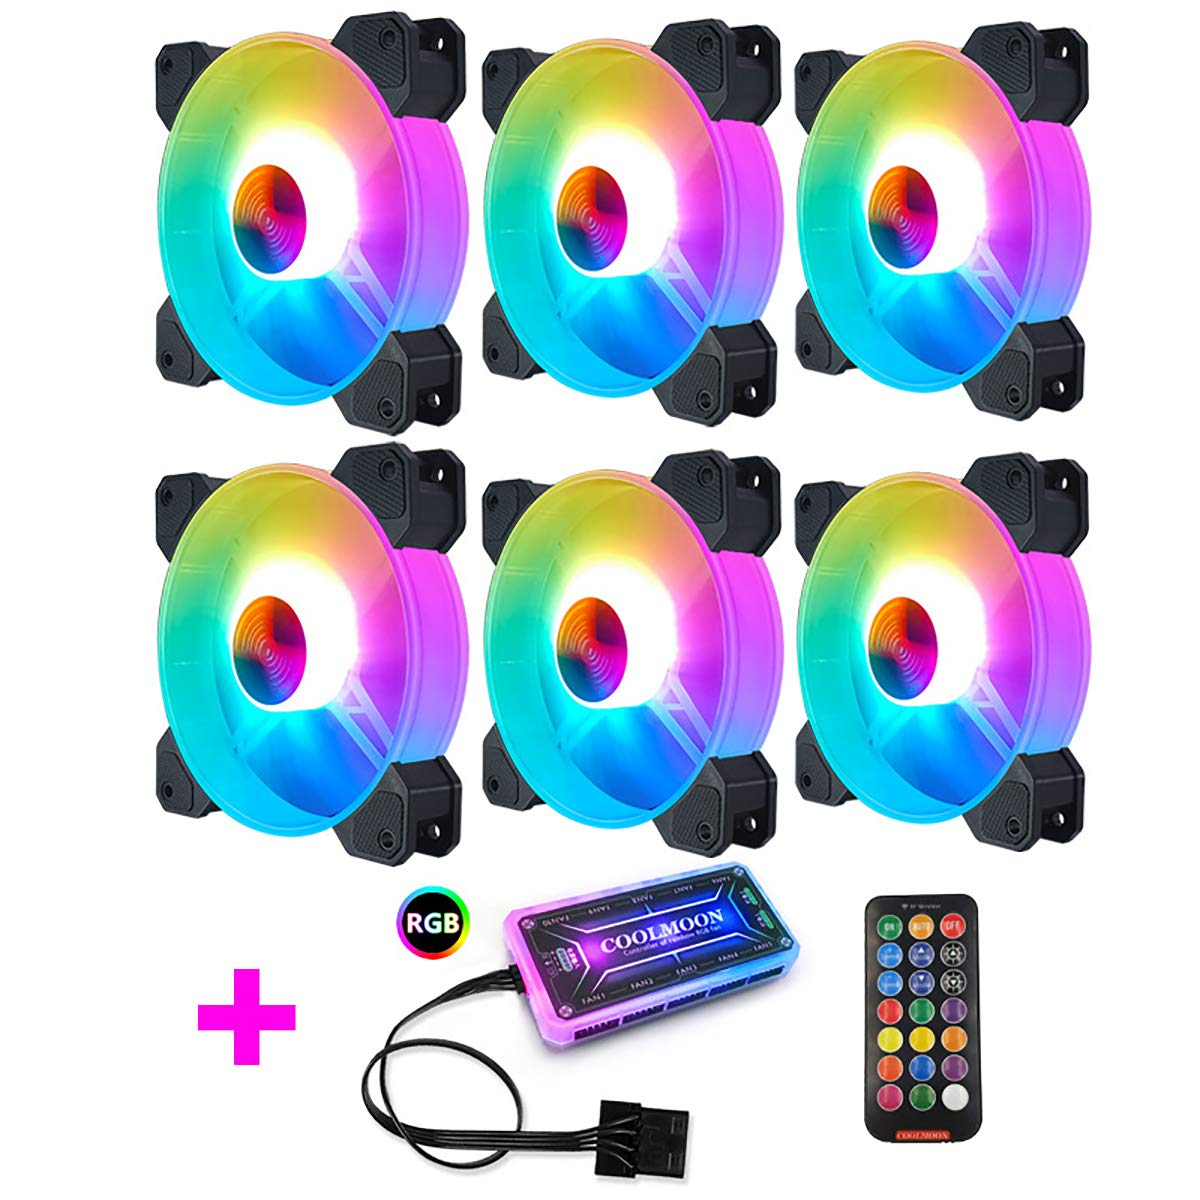 DIY House 120mm Case Fan,120 RGB Full-Ring Light Loop LED PWM Adjustable Color Quiet High Performance Cooling Fan for PC Case 6 Packs with Wireless Controller (6pack+Remote)